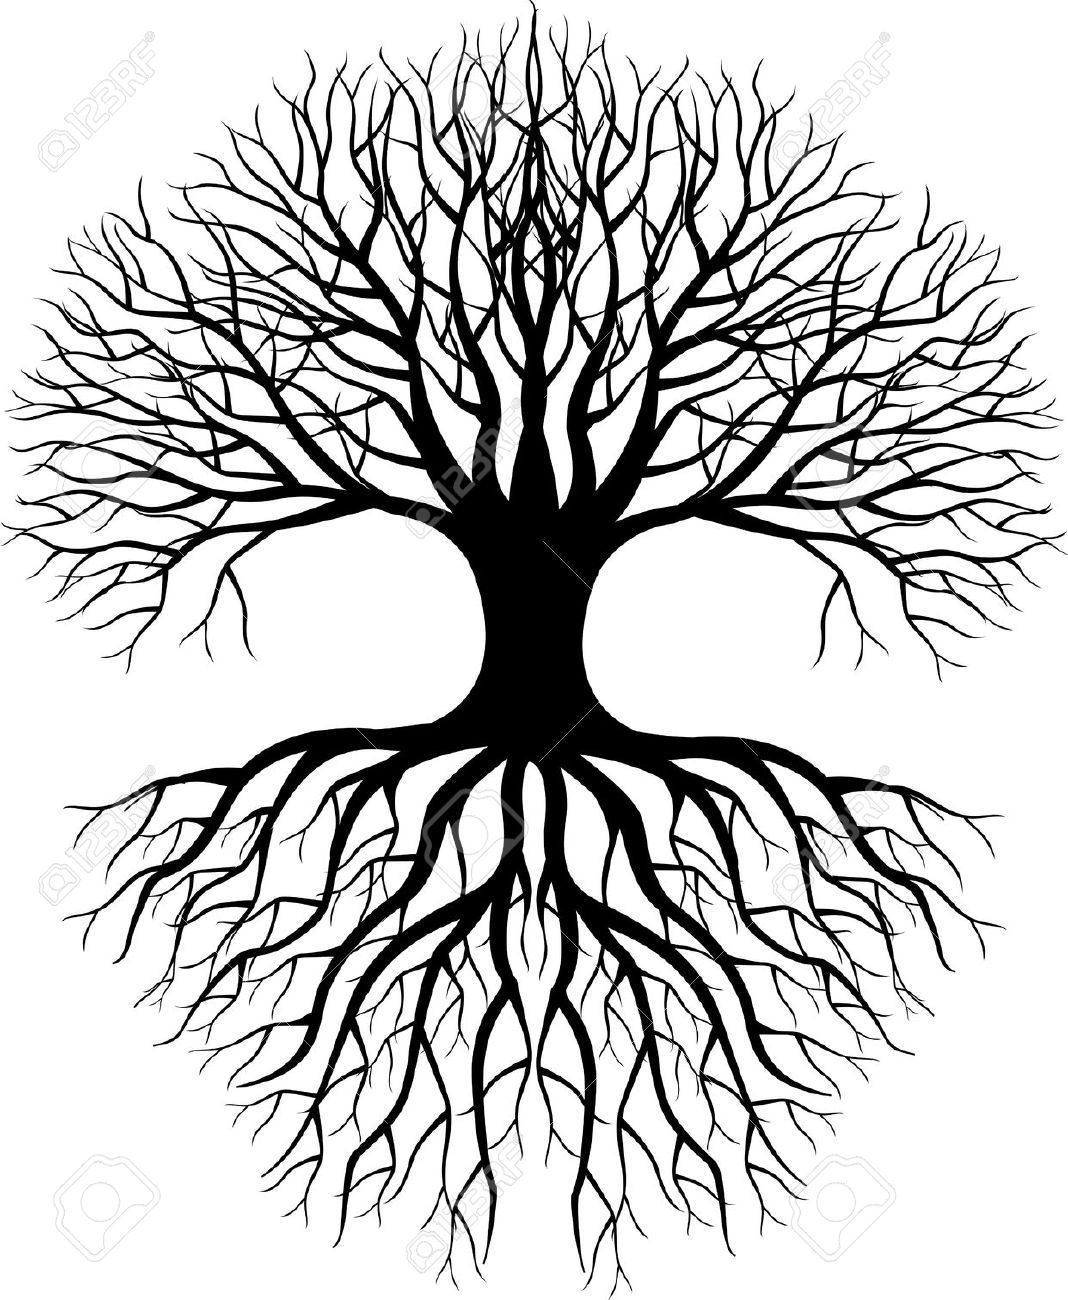 Tree Silhouette Royalty Free Cliparts Vectors And Stock Tree Silhouette Tree Of Life Tattoo Roots Drawing